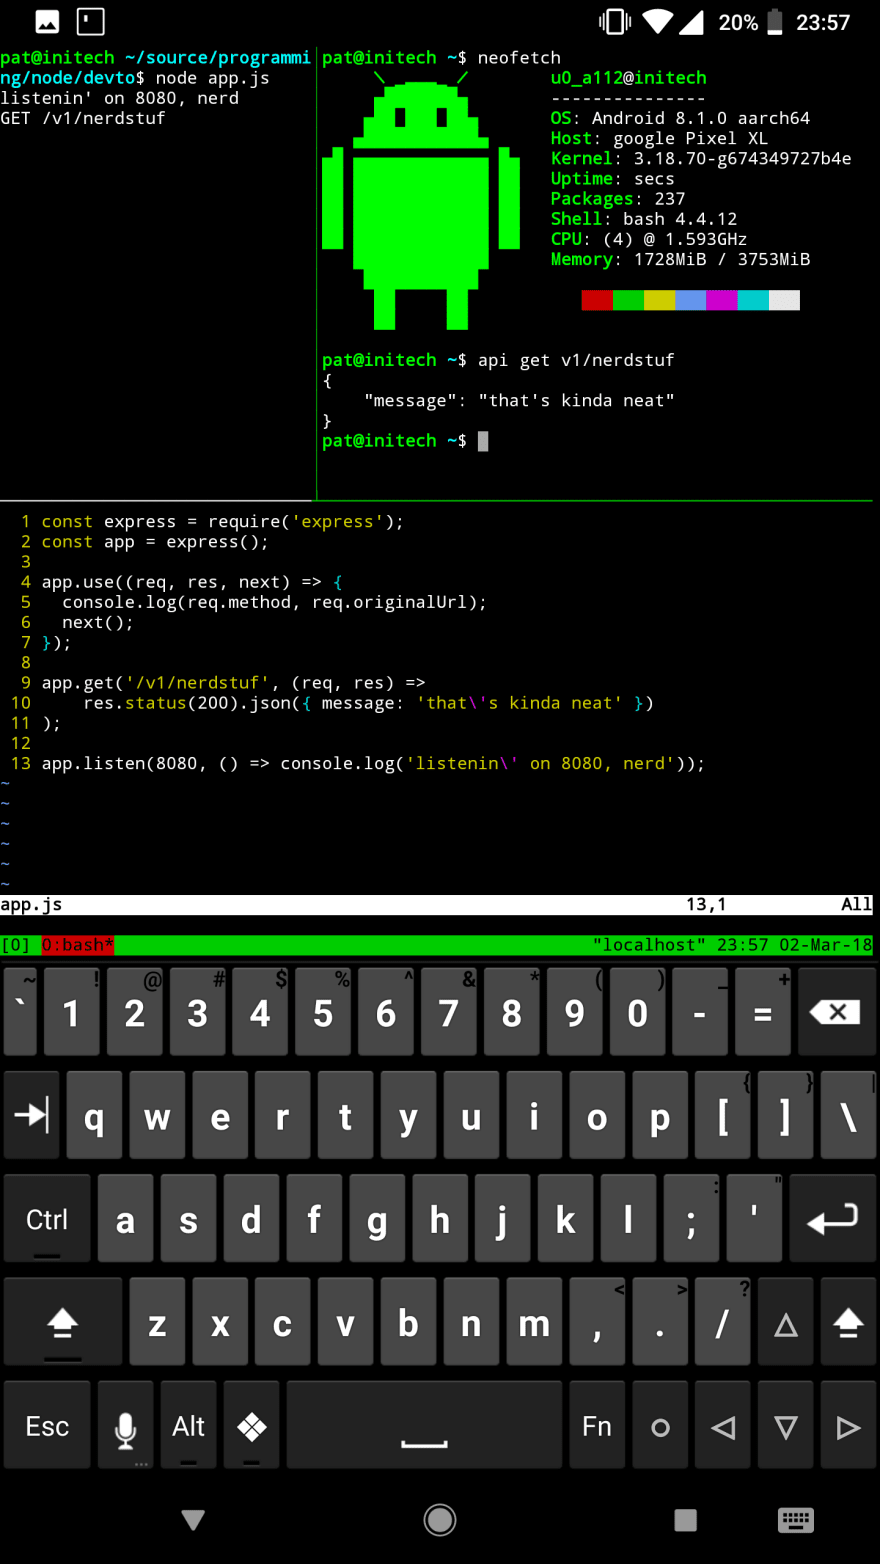 termux on android